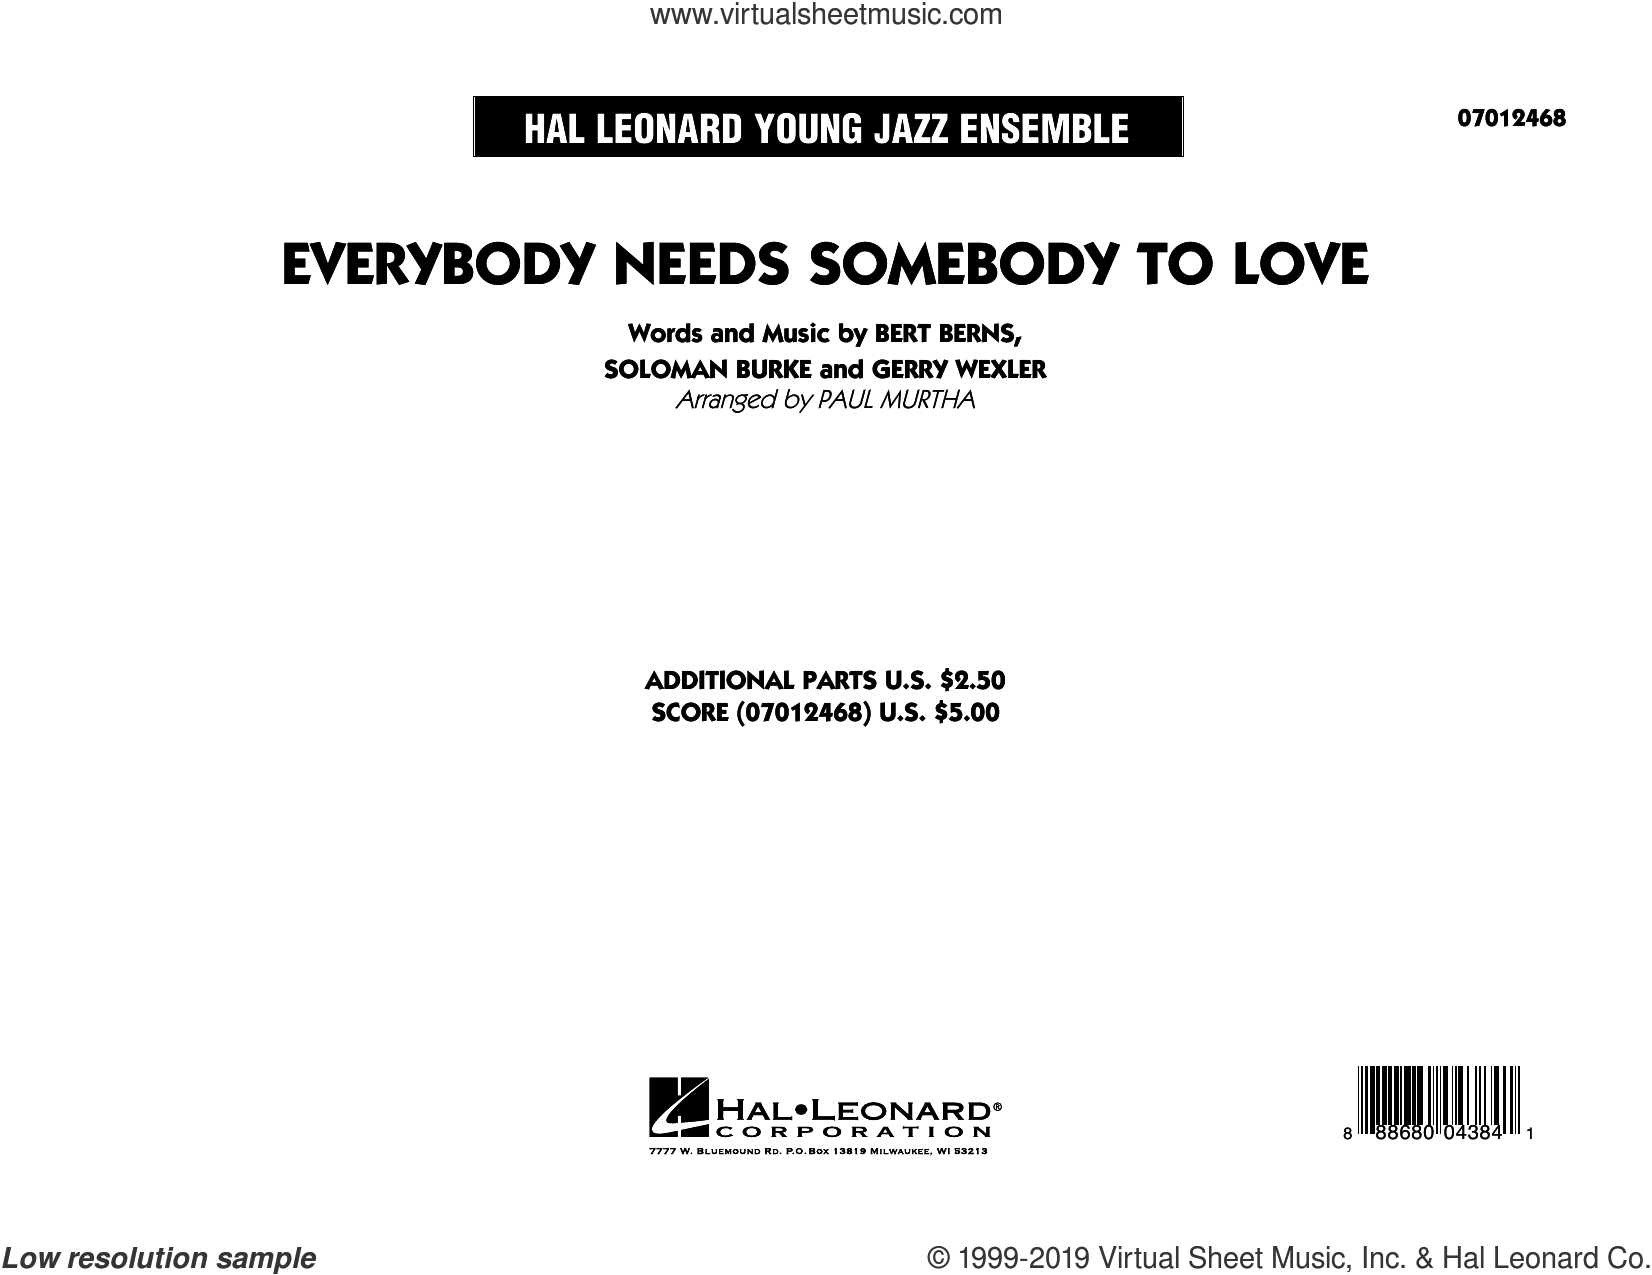 Everybody Needs Somebody to Love (COMPLETE) sheet music for jazz band by Paul Murtha, Bert Berns, Gerry Wexler, Soloman Burke, The Blues Brothers and Wilson Pickett, intermediate skill level